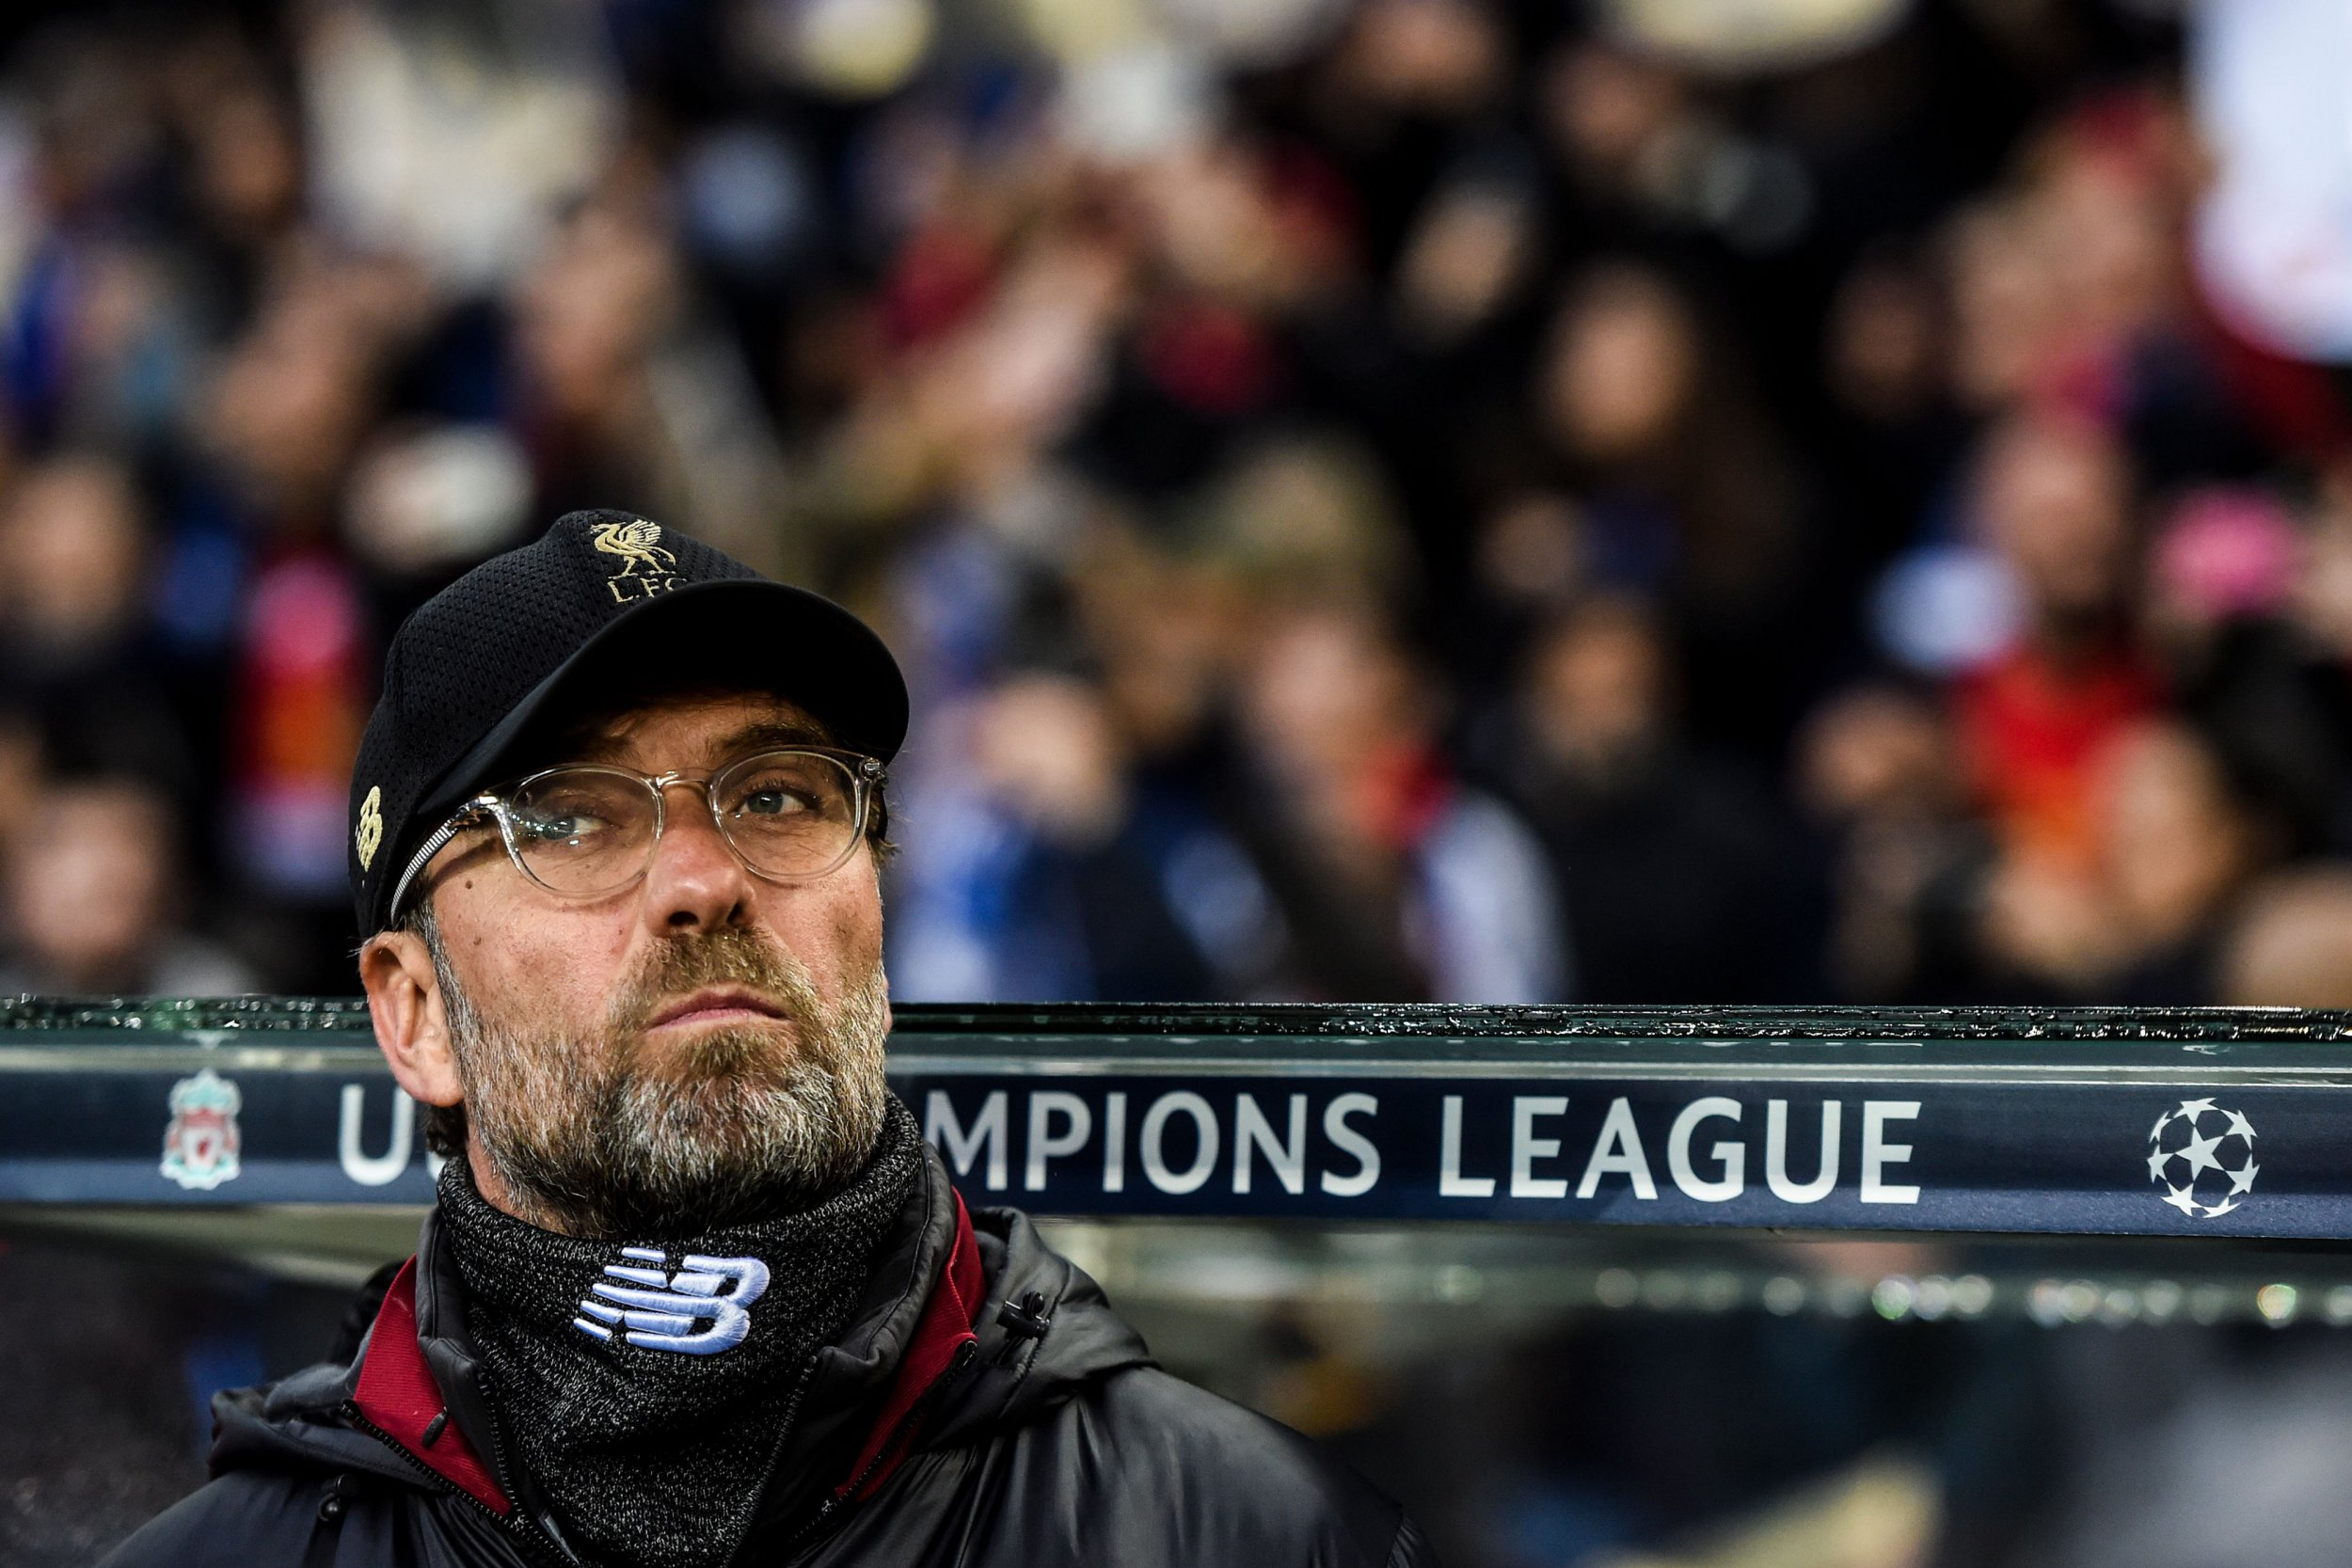 Liverpool's German manager Jurgen Klopp looks on before a UEFA Champions League quarter-final second leg football compare between FC Porto and Liverpool during a Dragao track in Porto on Apr 17, 2019. (Photo by PATRICIA DE MELO MOREIRA / AFP)PATRICIA DE MELO MOREIRA/AFP/Getty Images